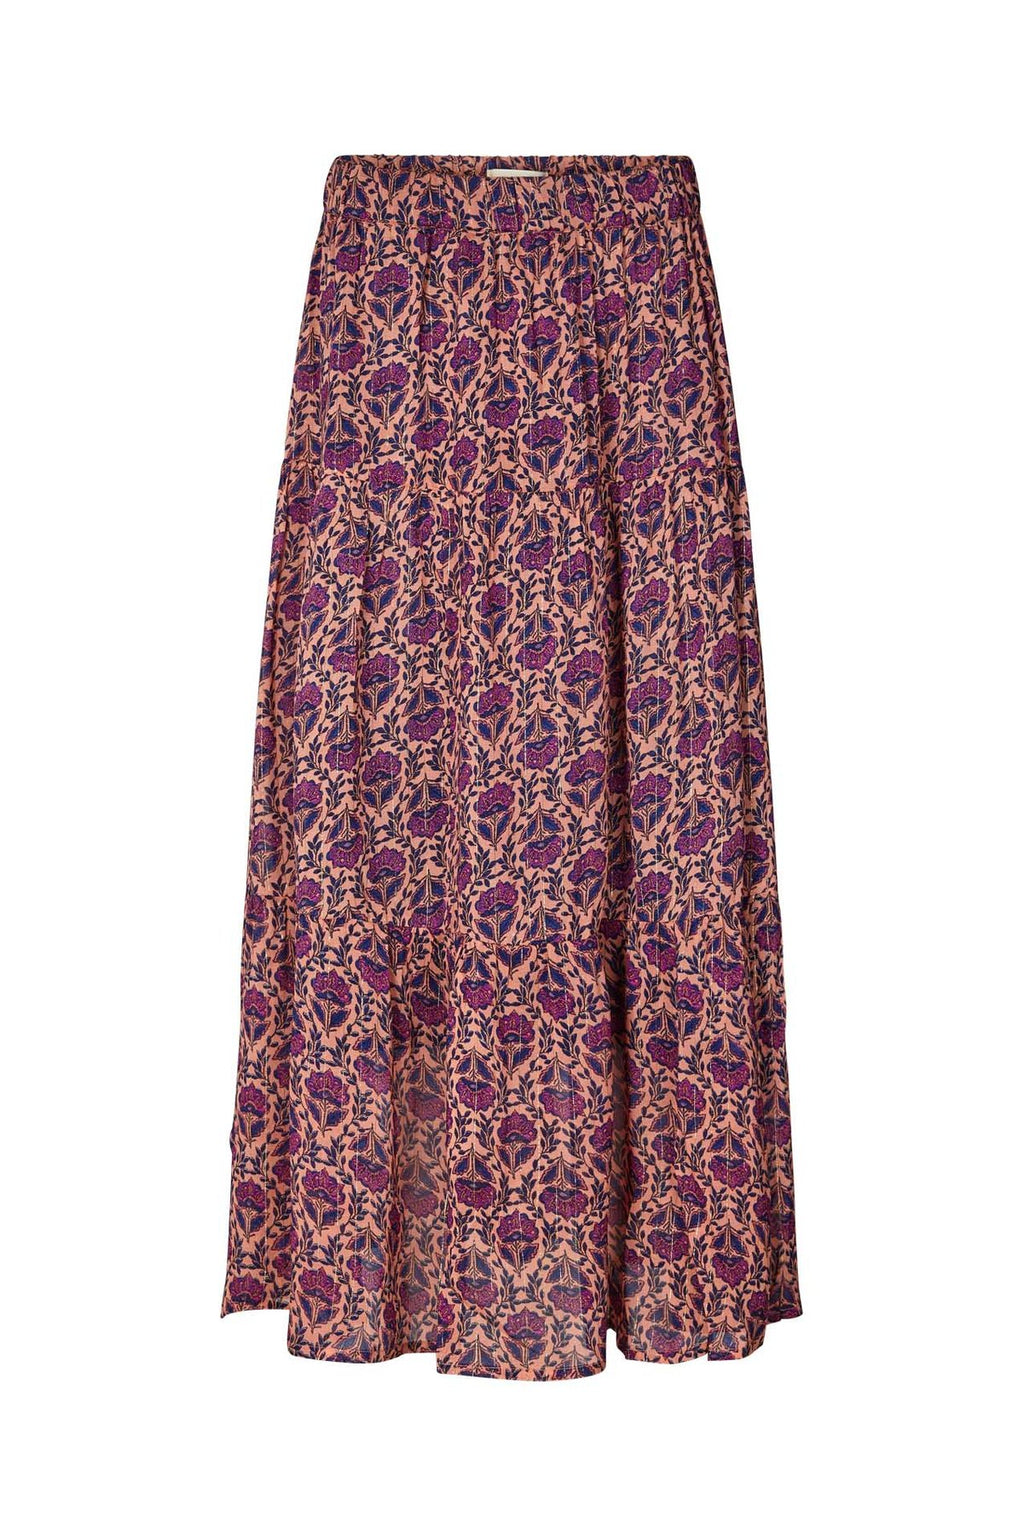 Lollys Laundry Bonny Flower Print Skirt